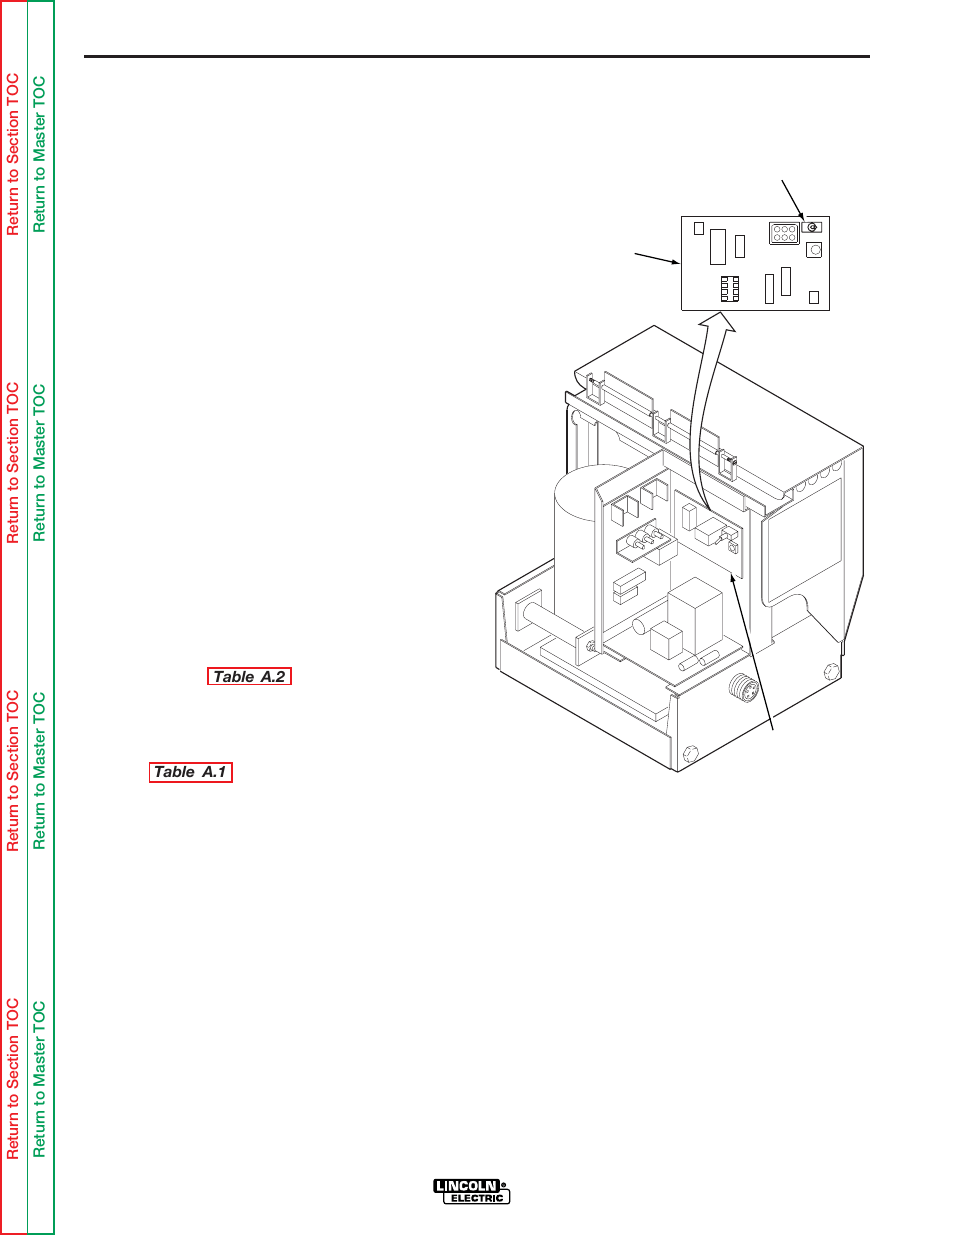 hight resolution of ln 8s and ln 8se and converted ln 8n and ln 8ne installation lincoln electric ln 8 svm132 a user manual page 10 99